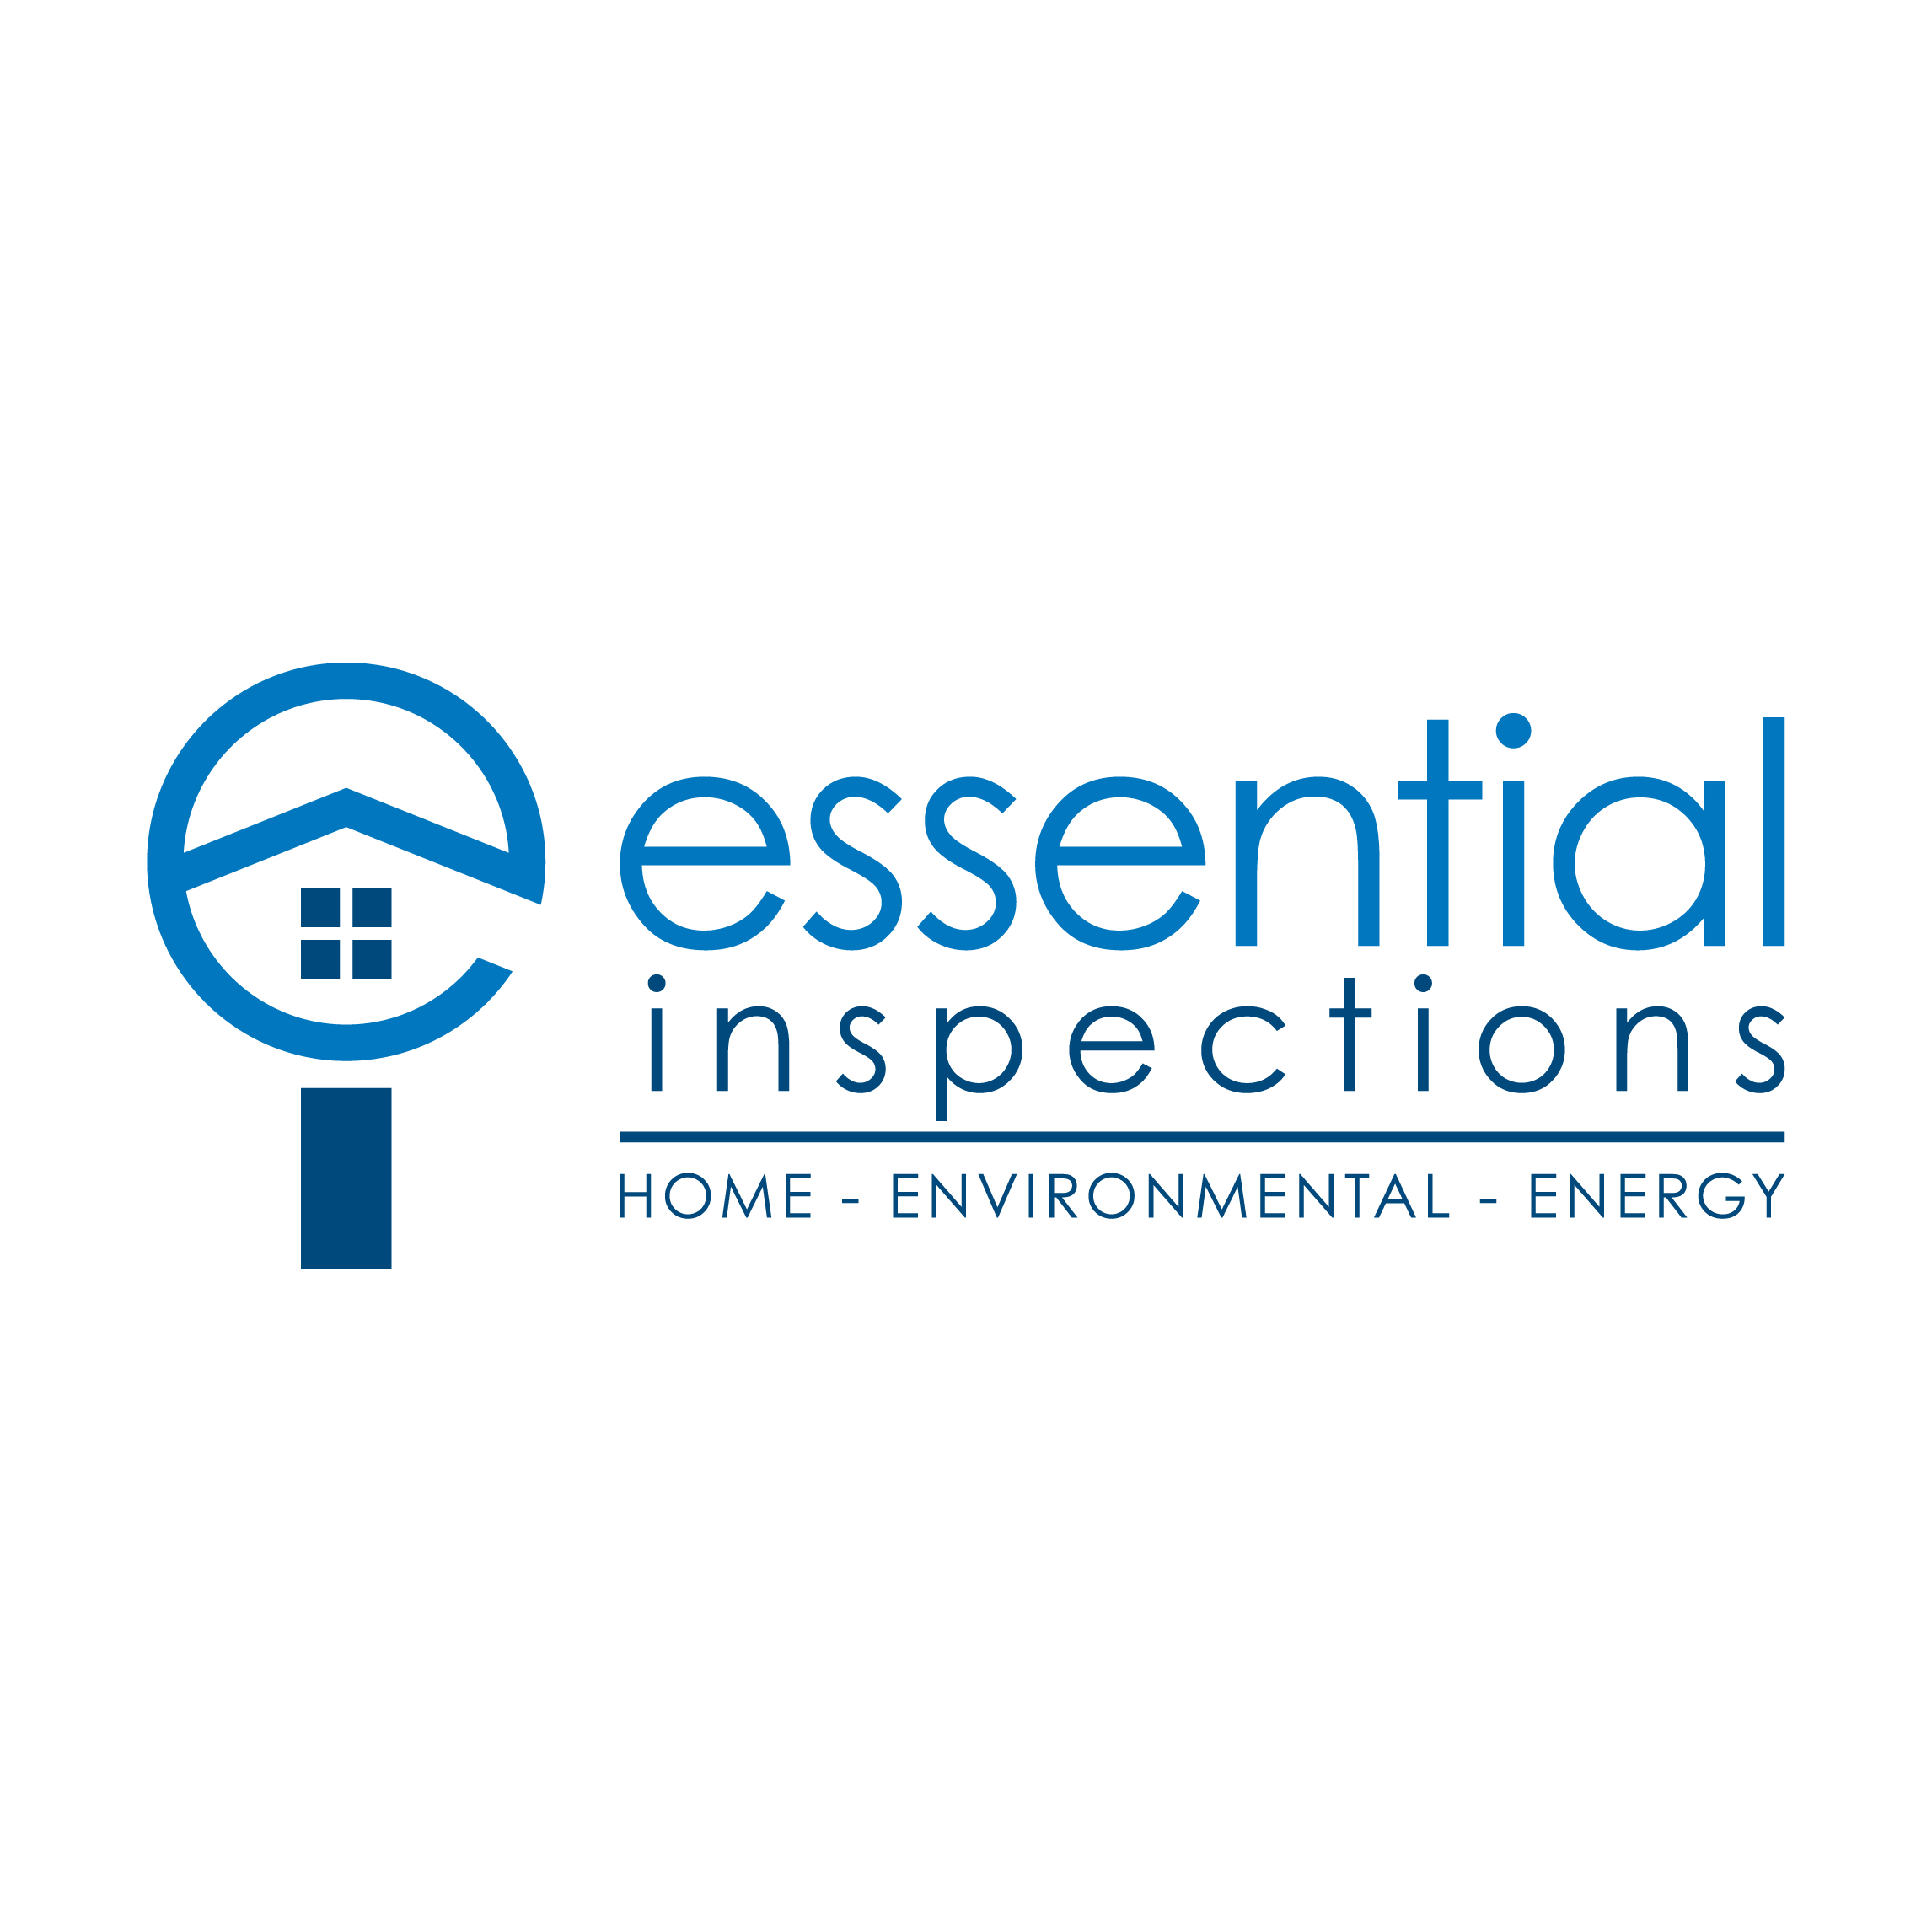 Essential Inspections LLC image 3